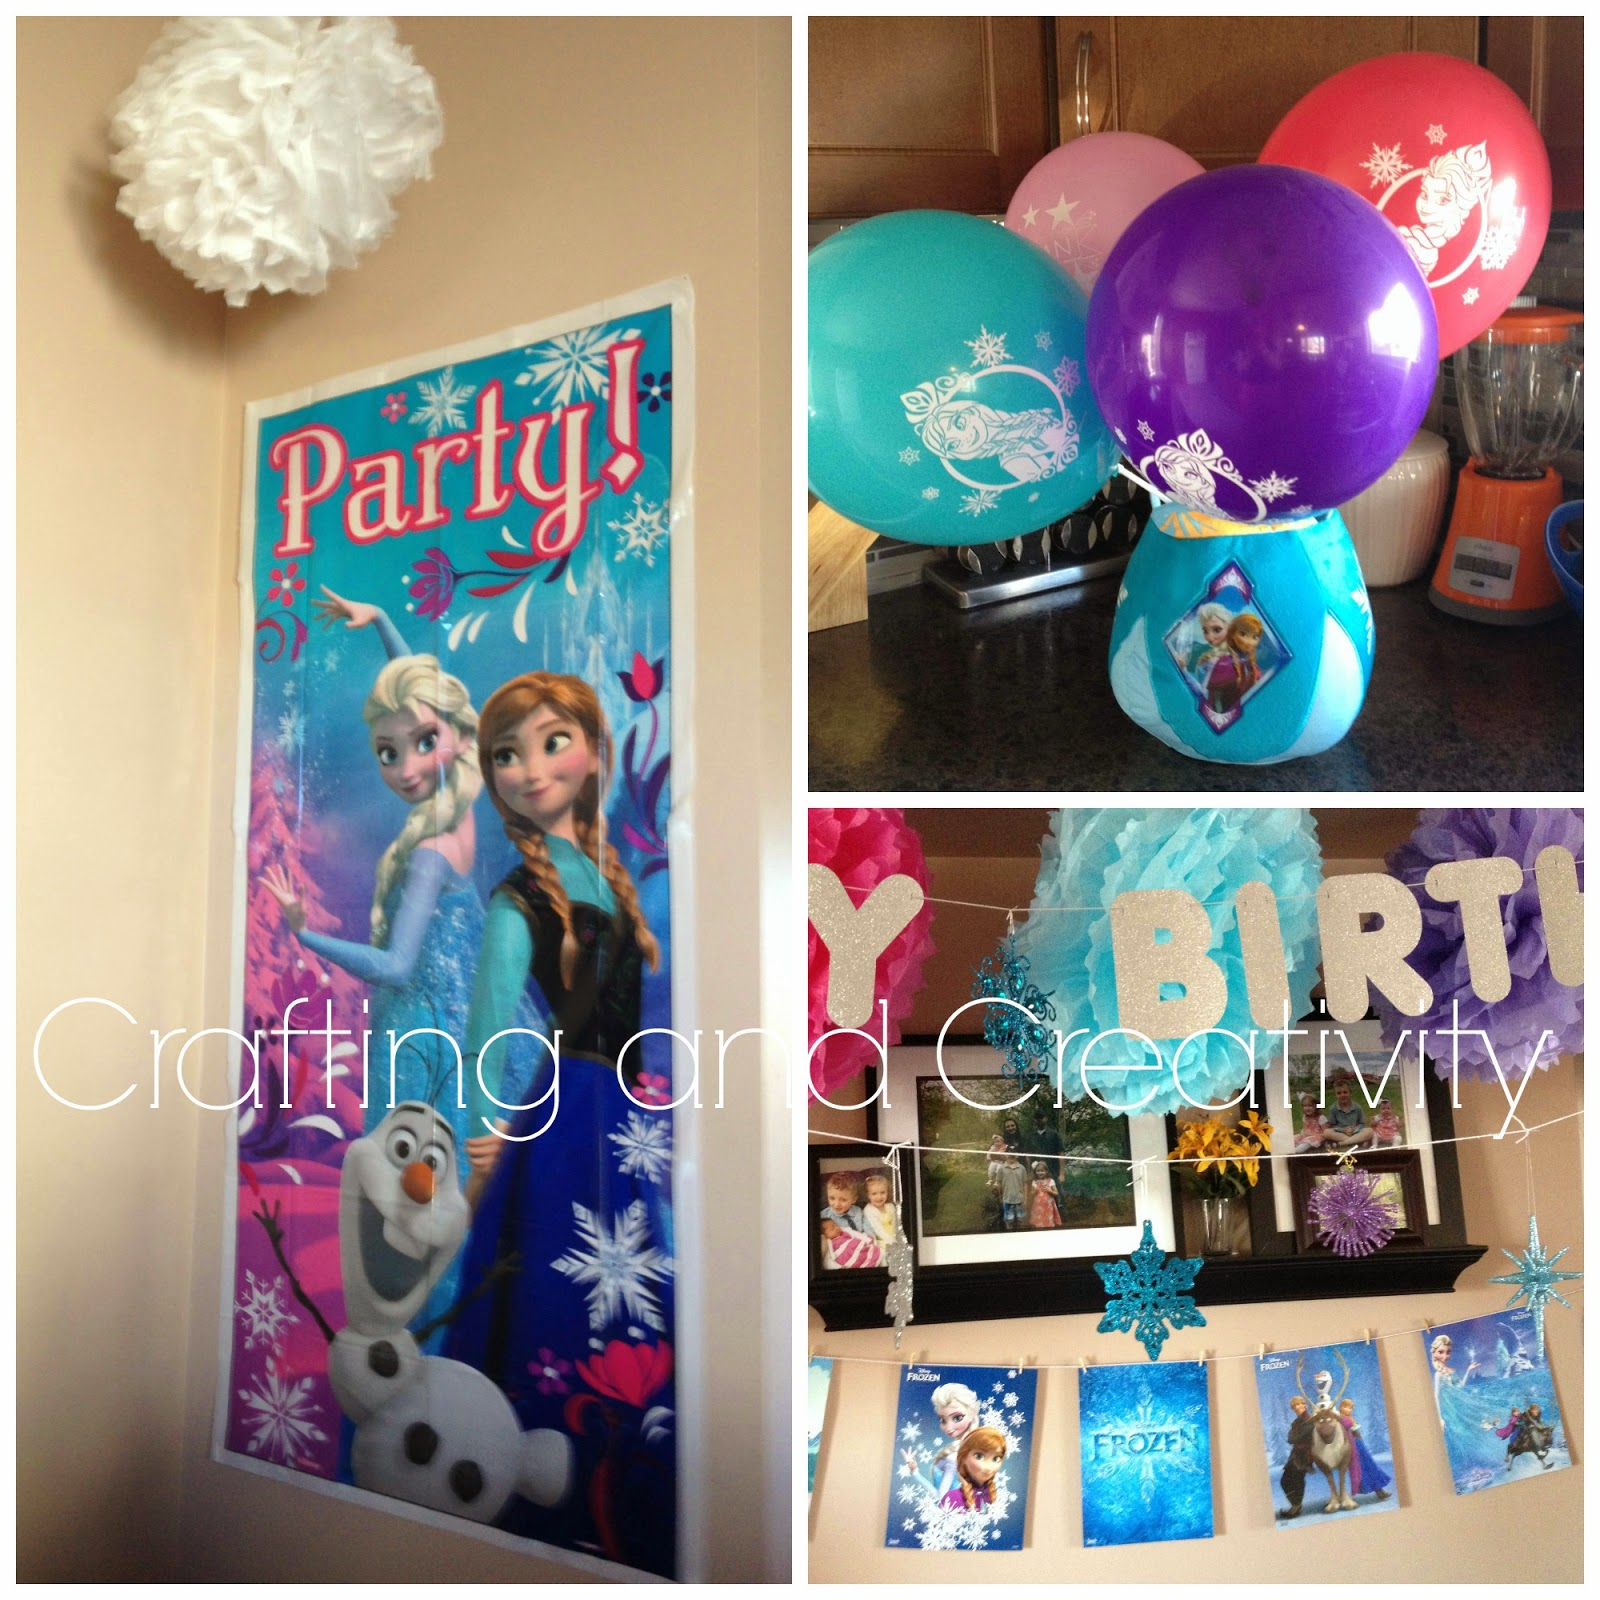 Happy 5th Birthday Quotes For Daughter: Crafting And Creativity: My Daughter's 5th Birthday